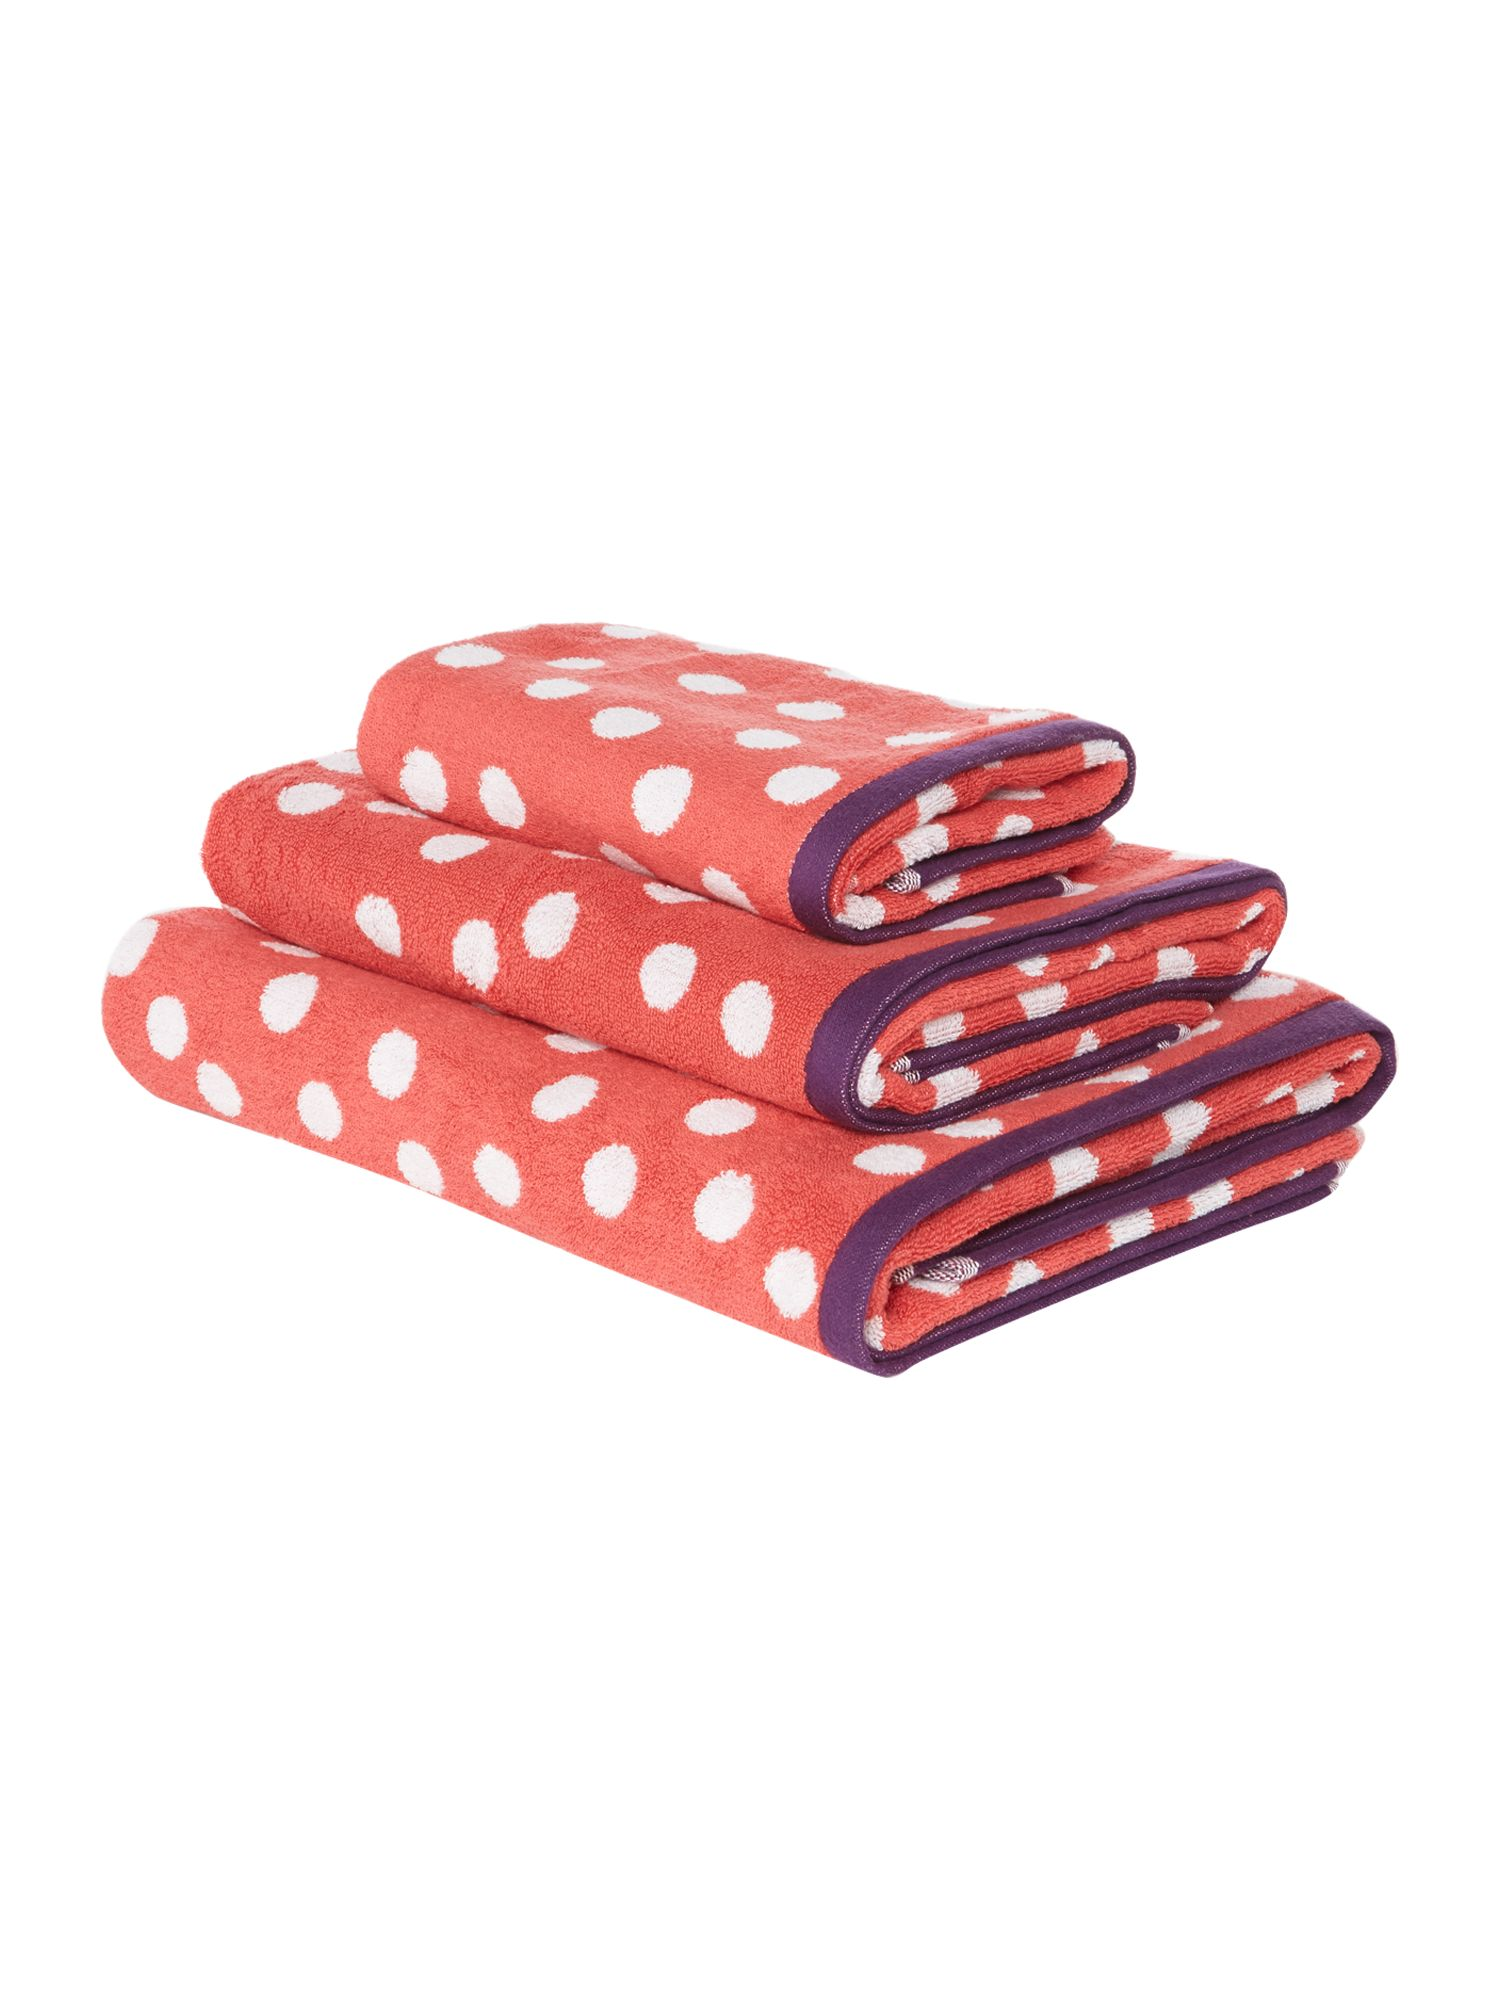 Pink Polka Dot Towel Collection